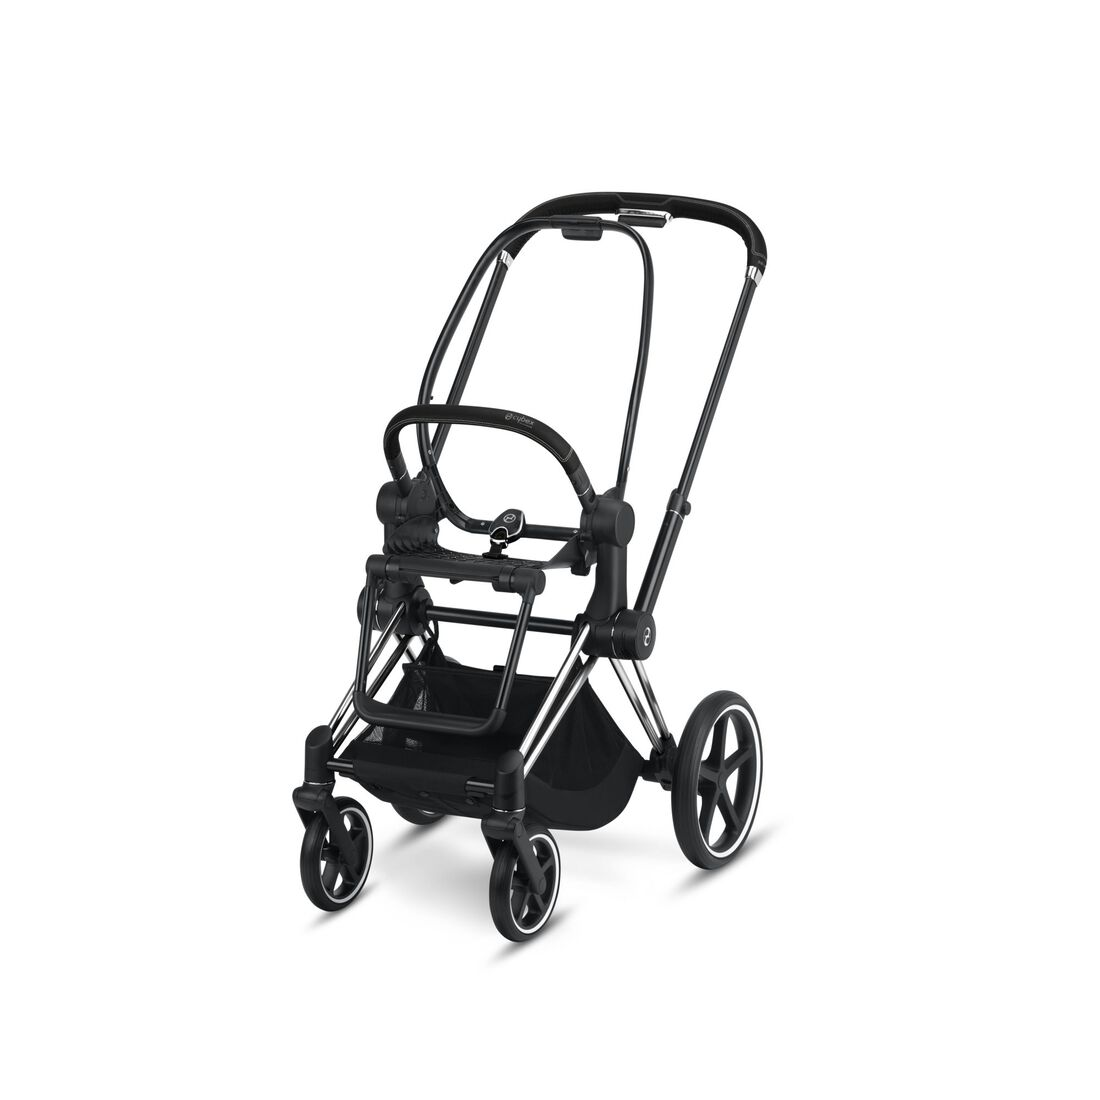 CYBEX Priam Frame - Chrome With Black Details in Chrome With Black Details large image number 1